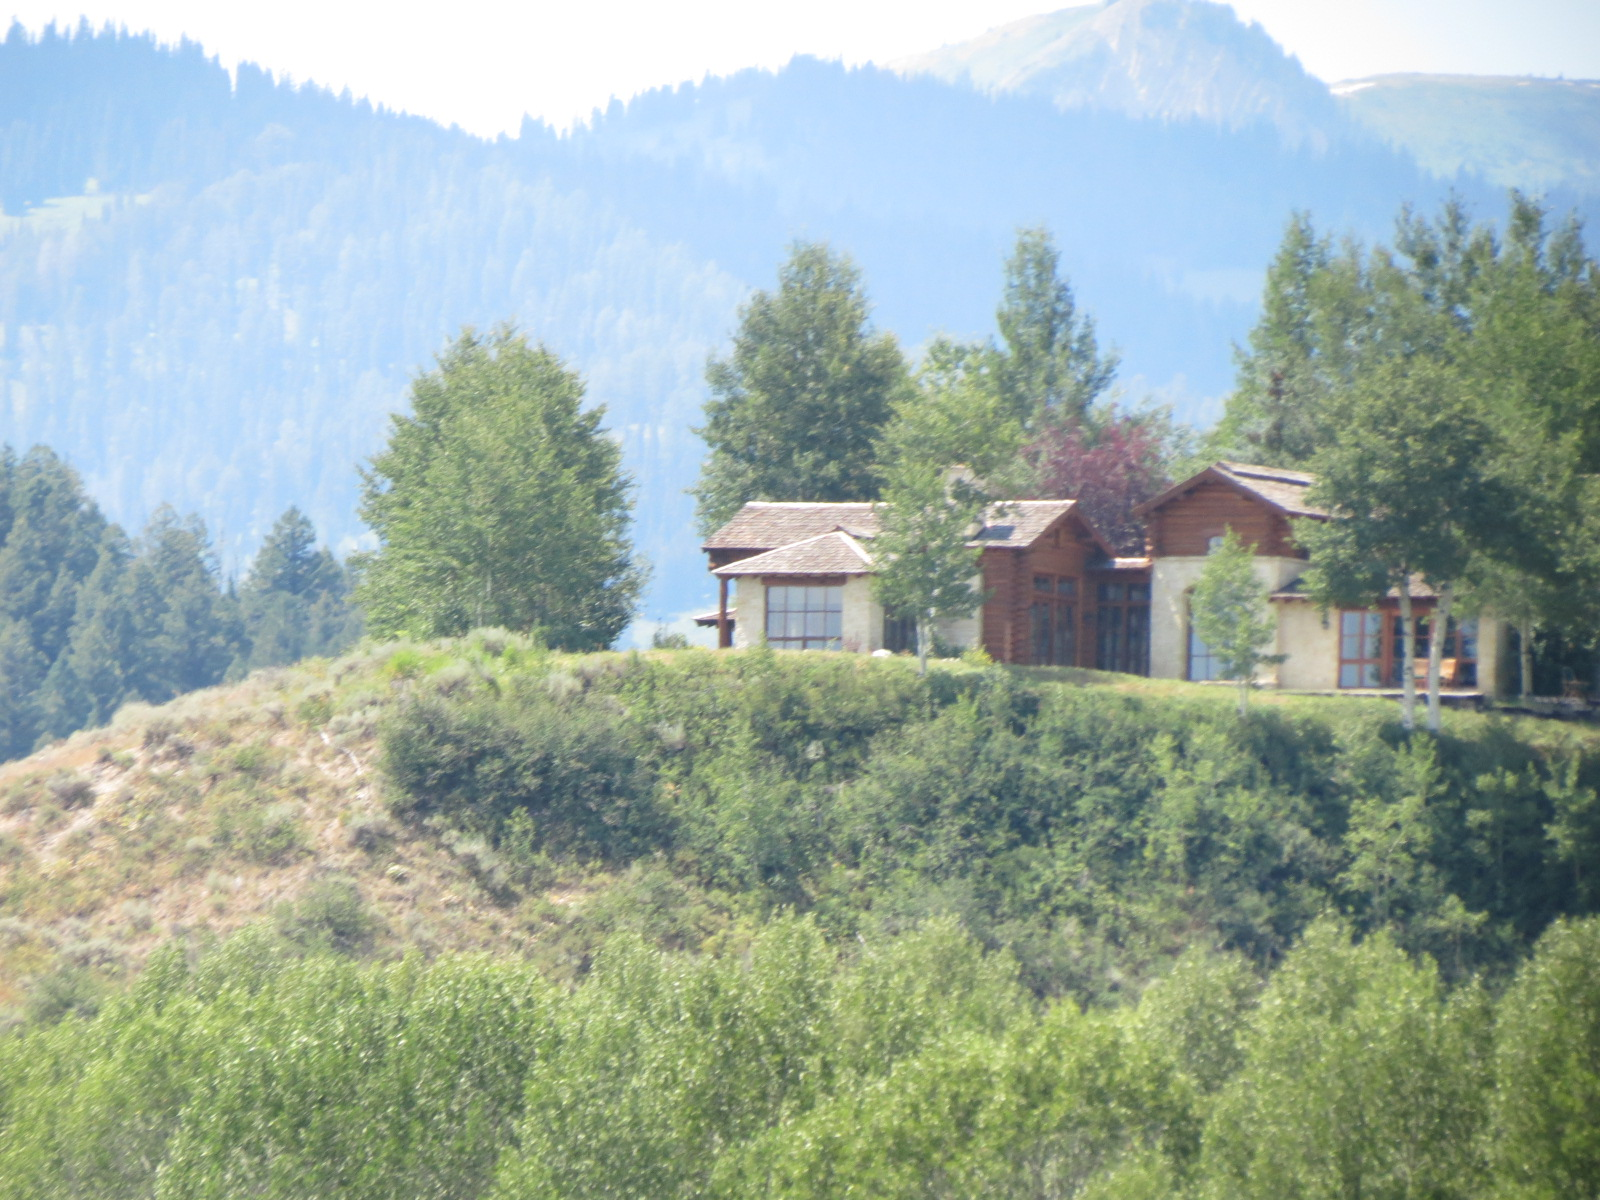 Sandra Bullock's house on the Snake River